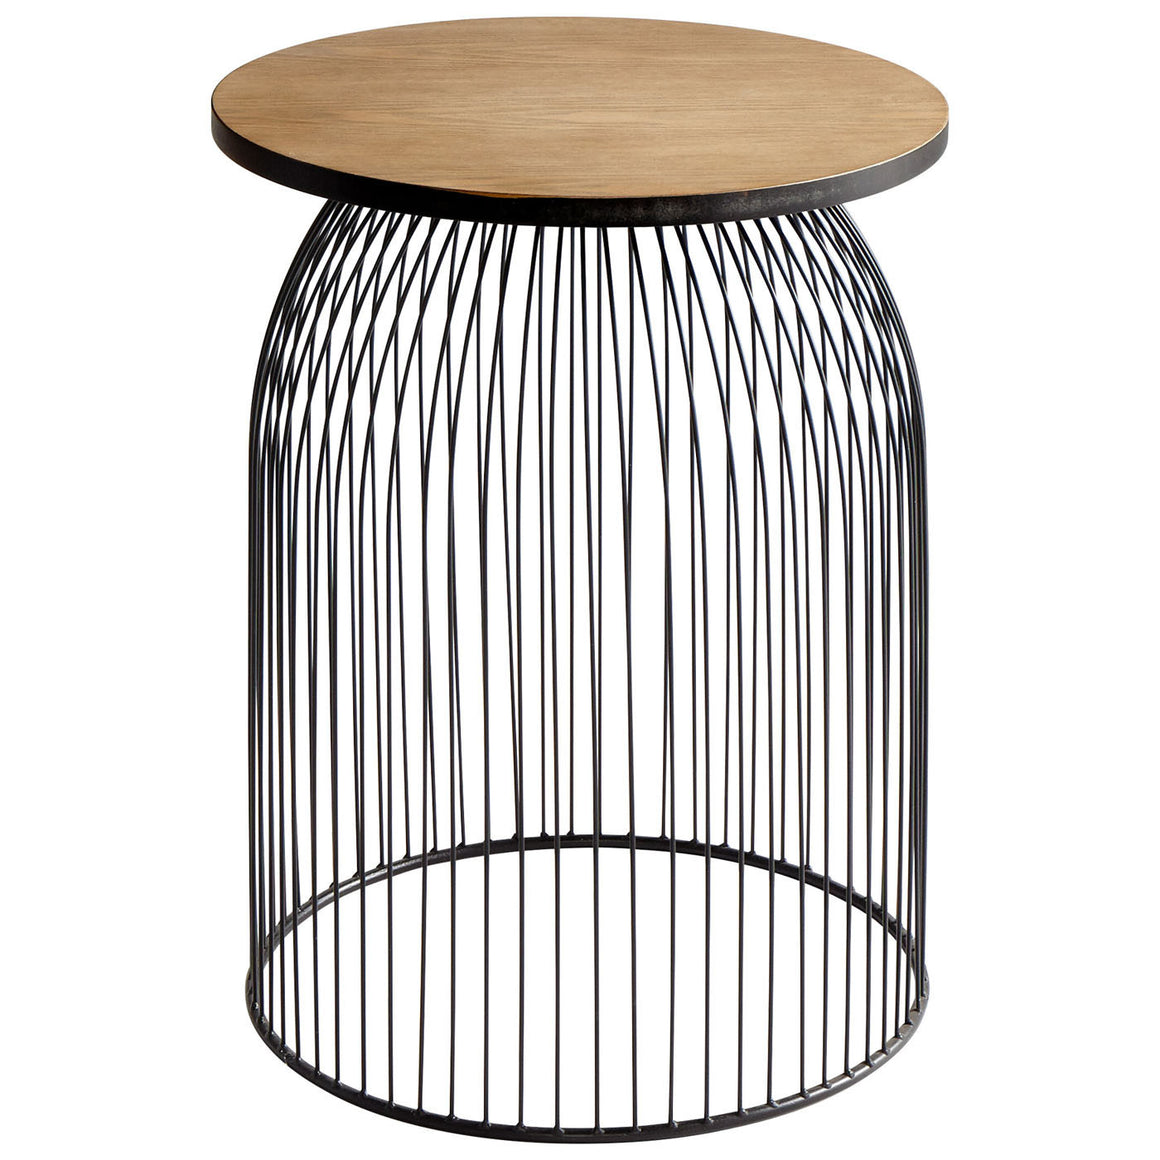 Bird Cage Stool 09043 by Cyan Design